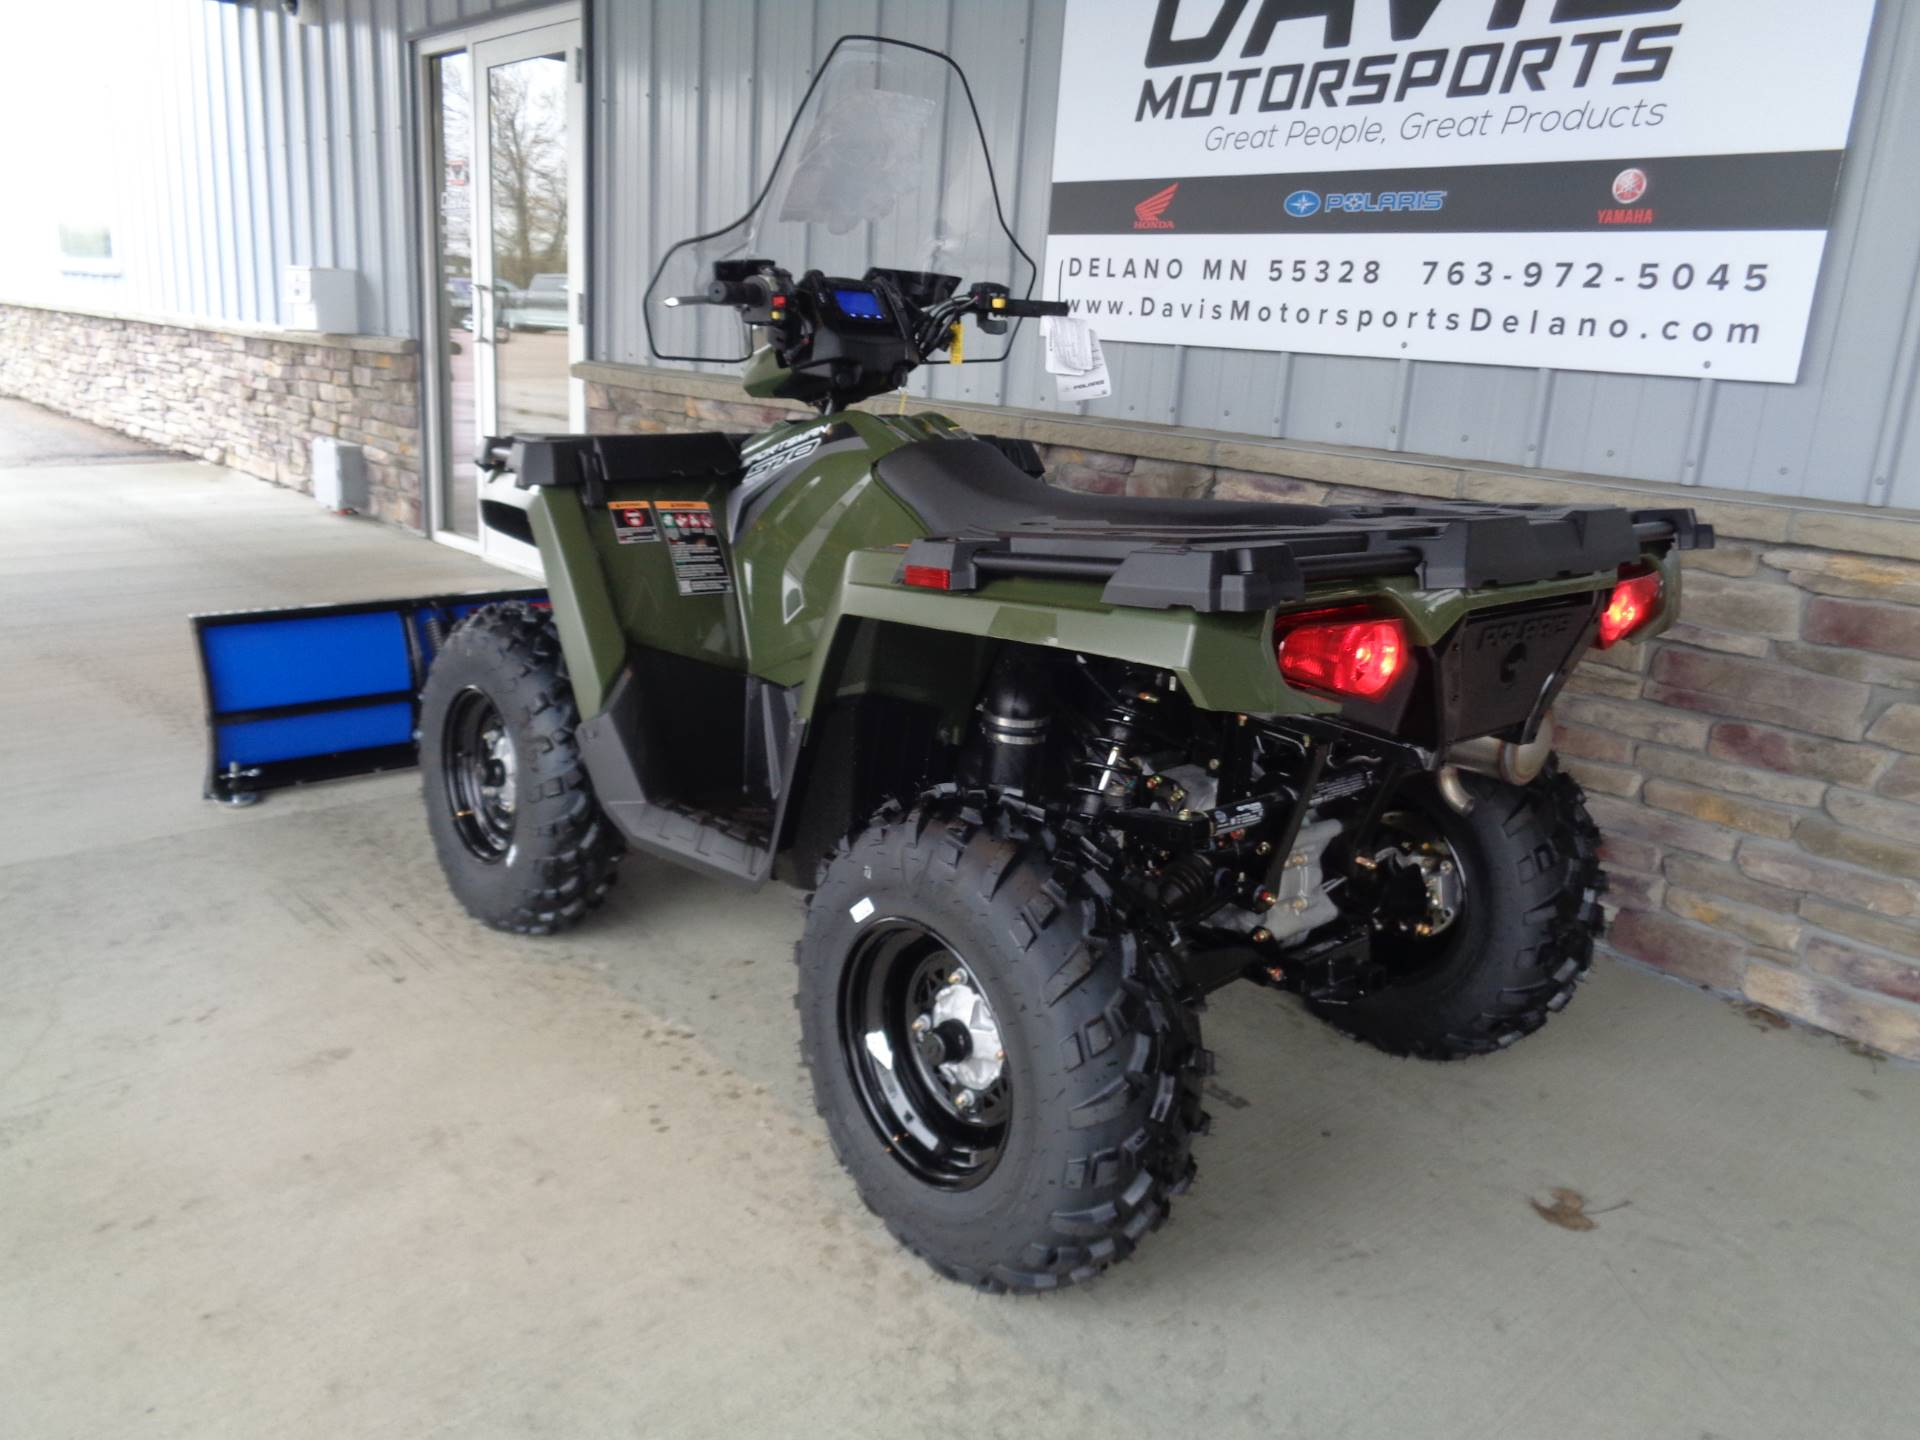 2019 Polaris Sportsman 570 EPS in Delano, Minnesota - Photo 6